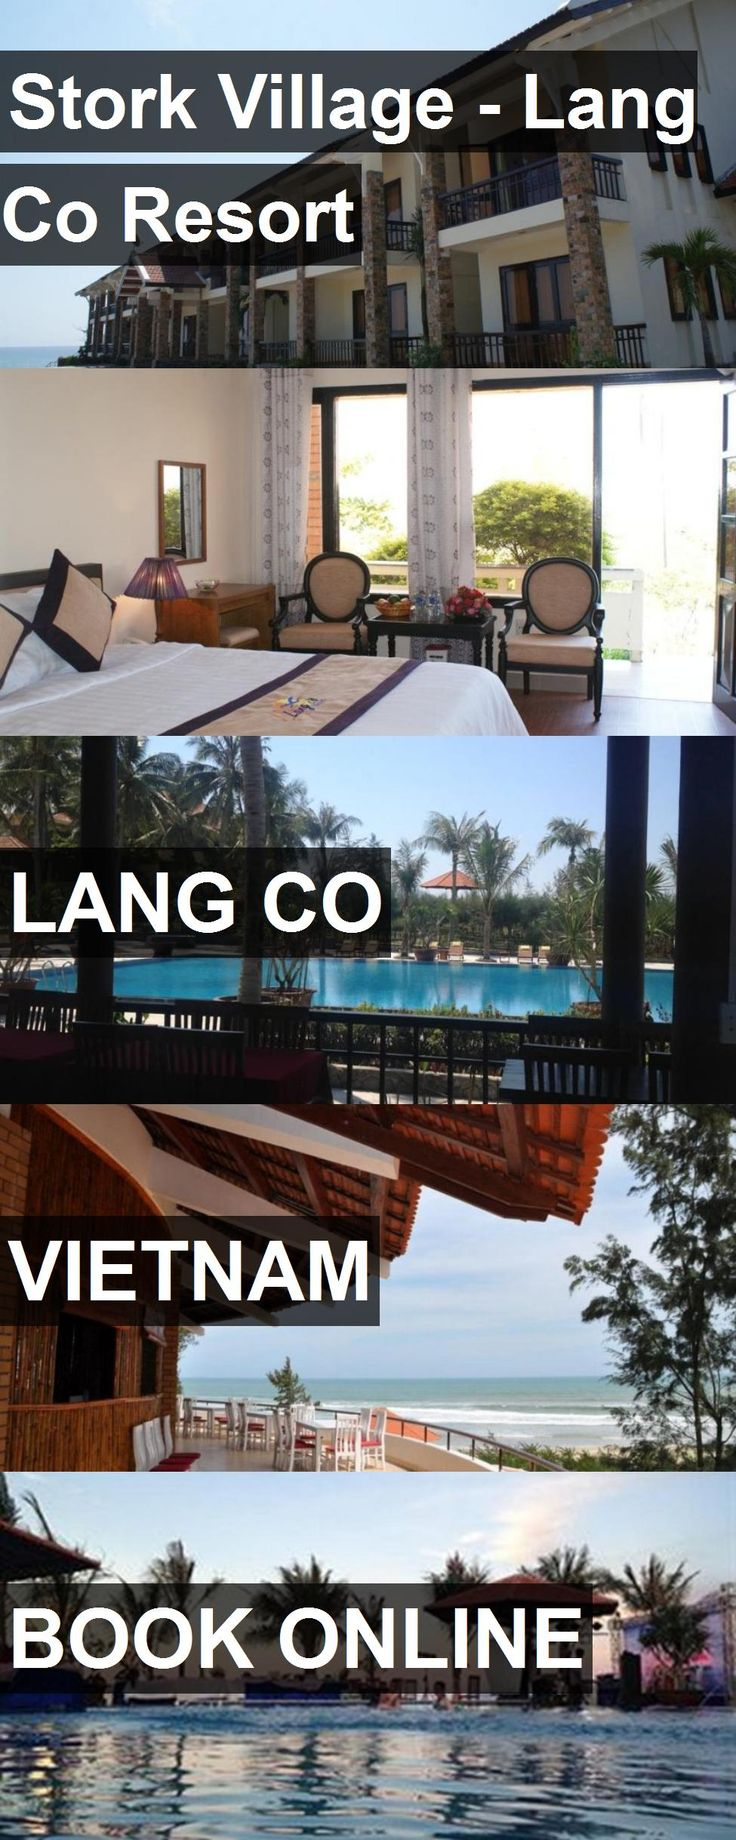 Hotel Stork Village - Lang Co Resort in Lang Co, Vietnam. For more information, photos, reviews and best prices please follow the link. #Vietnam #LangCo #hotel #travel #vacation